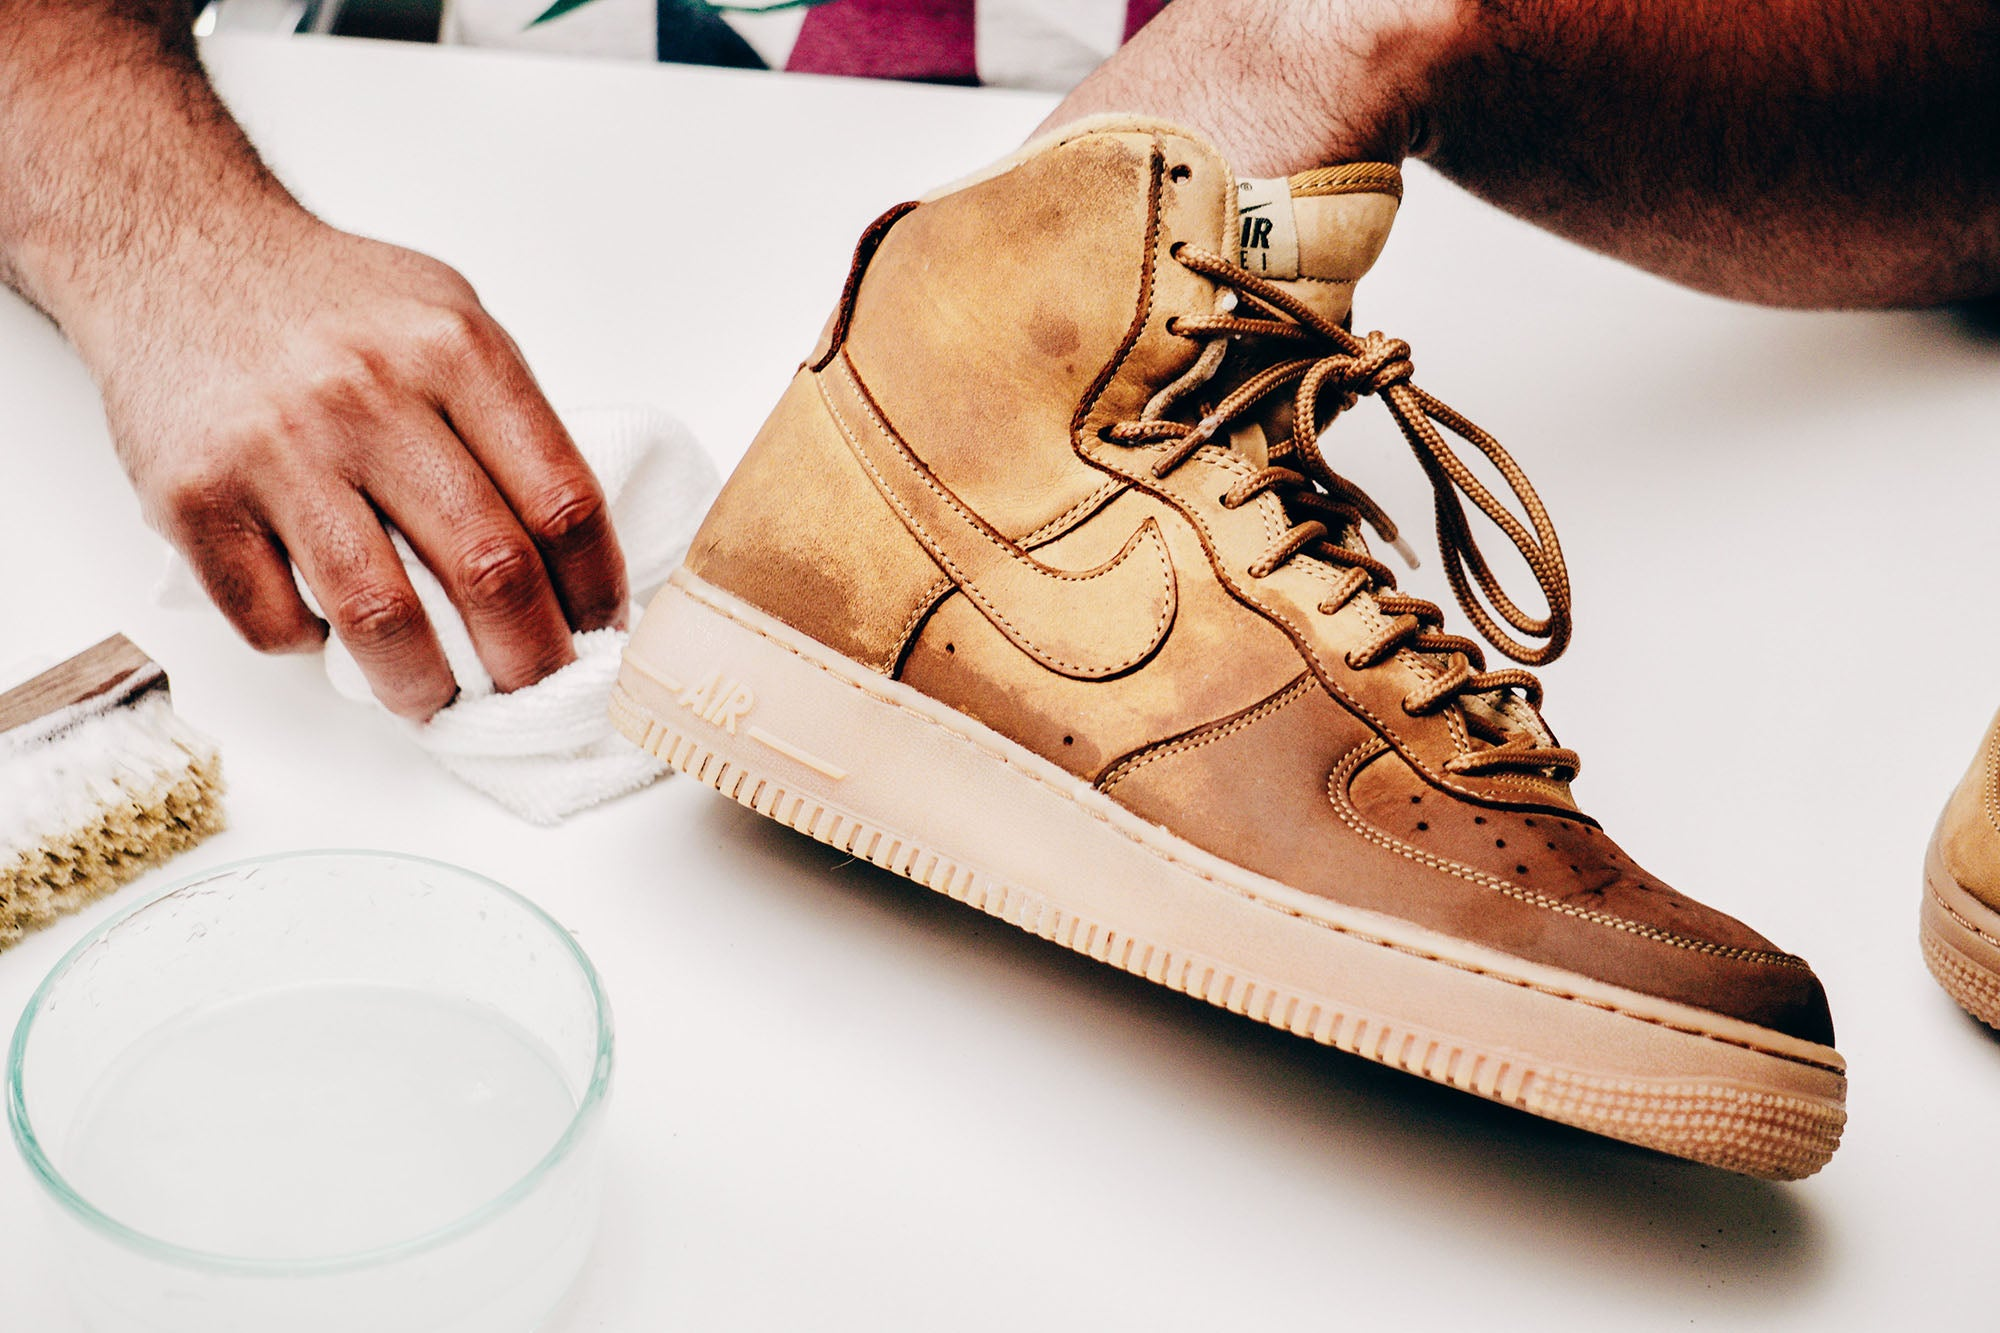 Jason Markk Sneaker Care 101 How to clean Nubuck shoes step 18